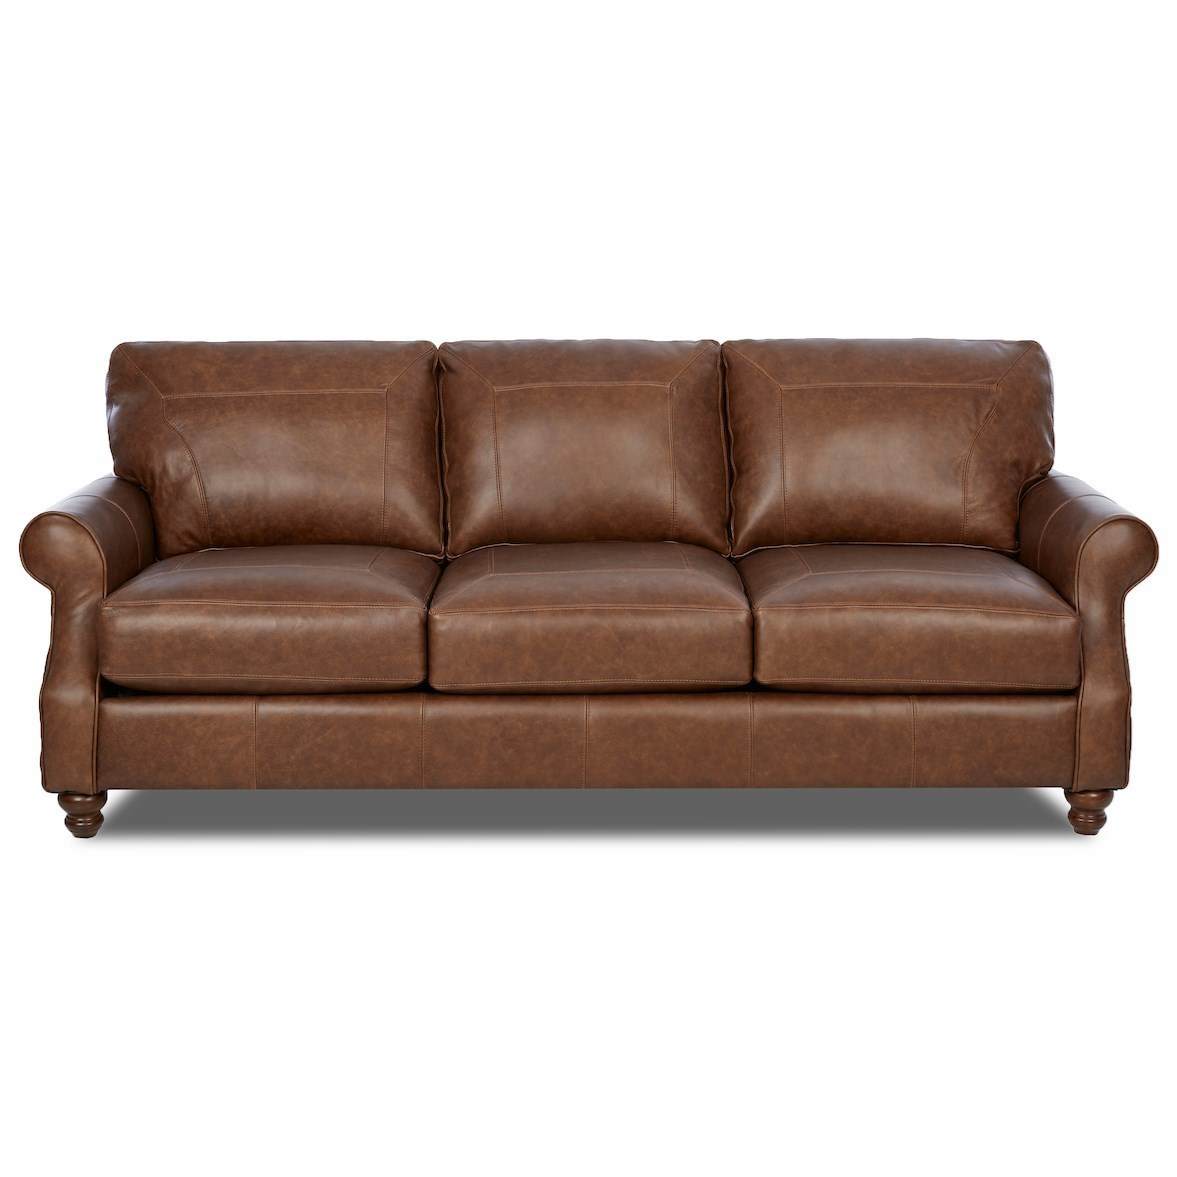 Tifton Extra Large Sofa by Klaussner at Johnny Janosik